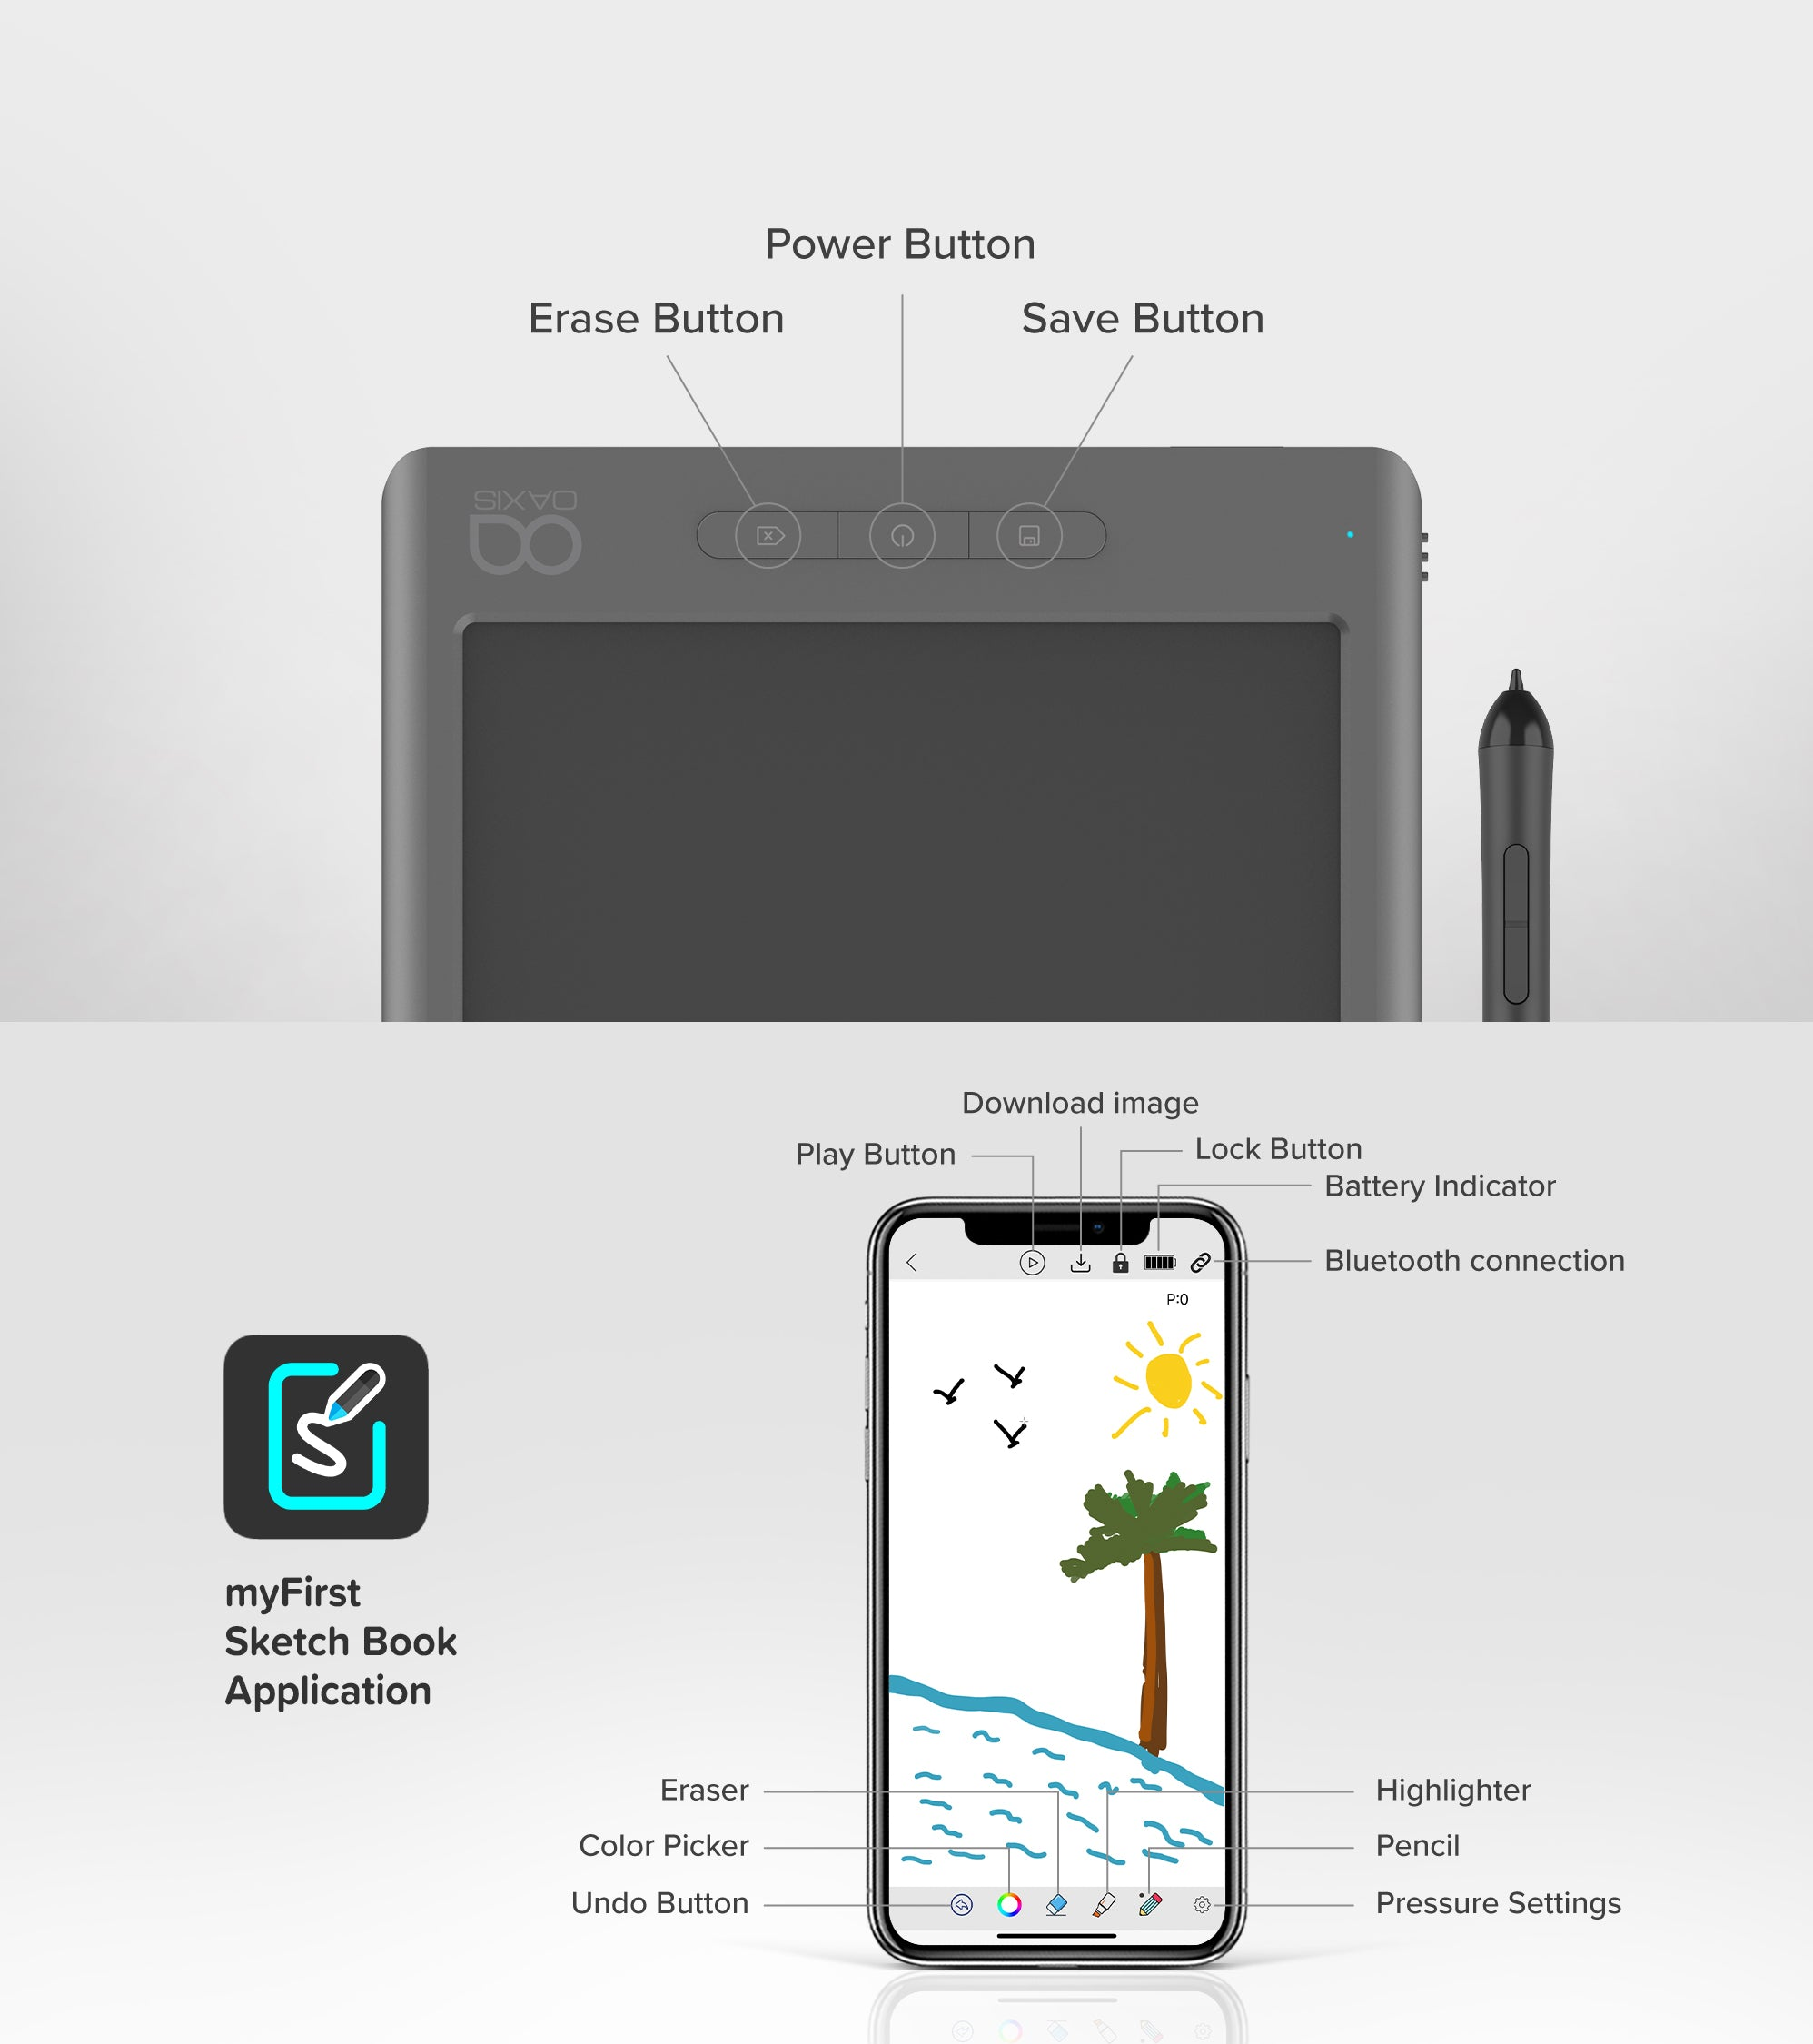 myFirst Sketch Book - Portable Drawing Pad with Instant Digitisation and sketch book apps